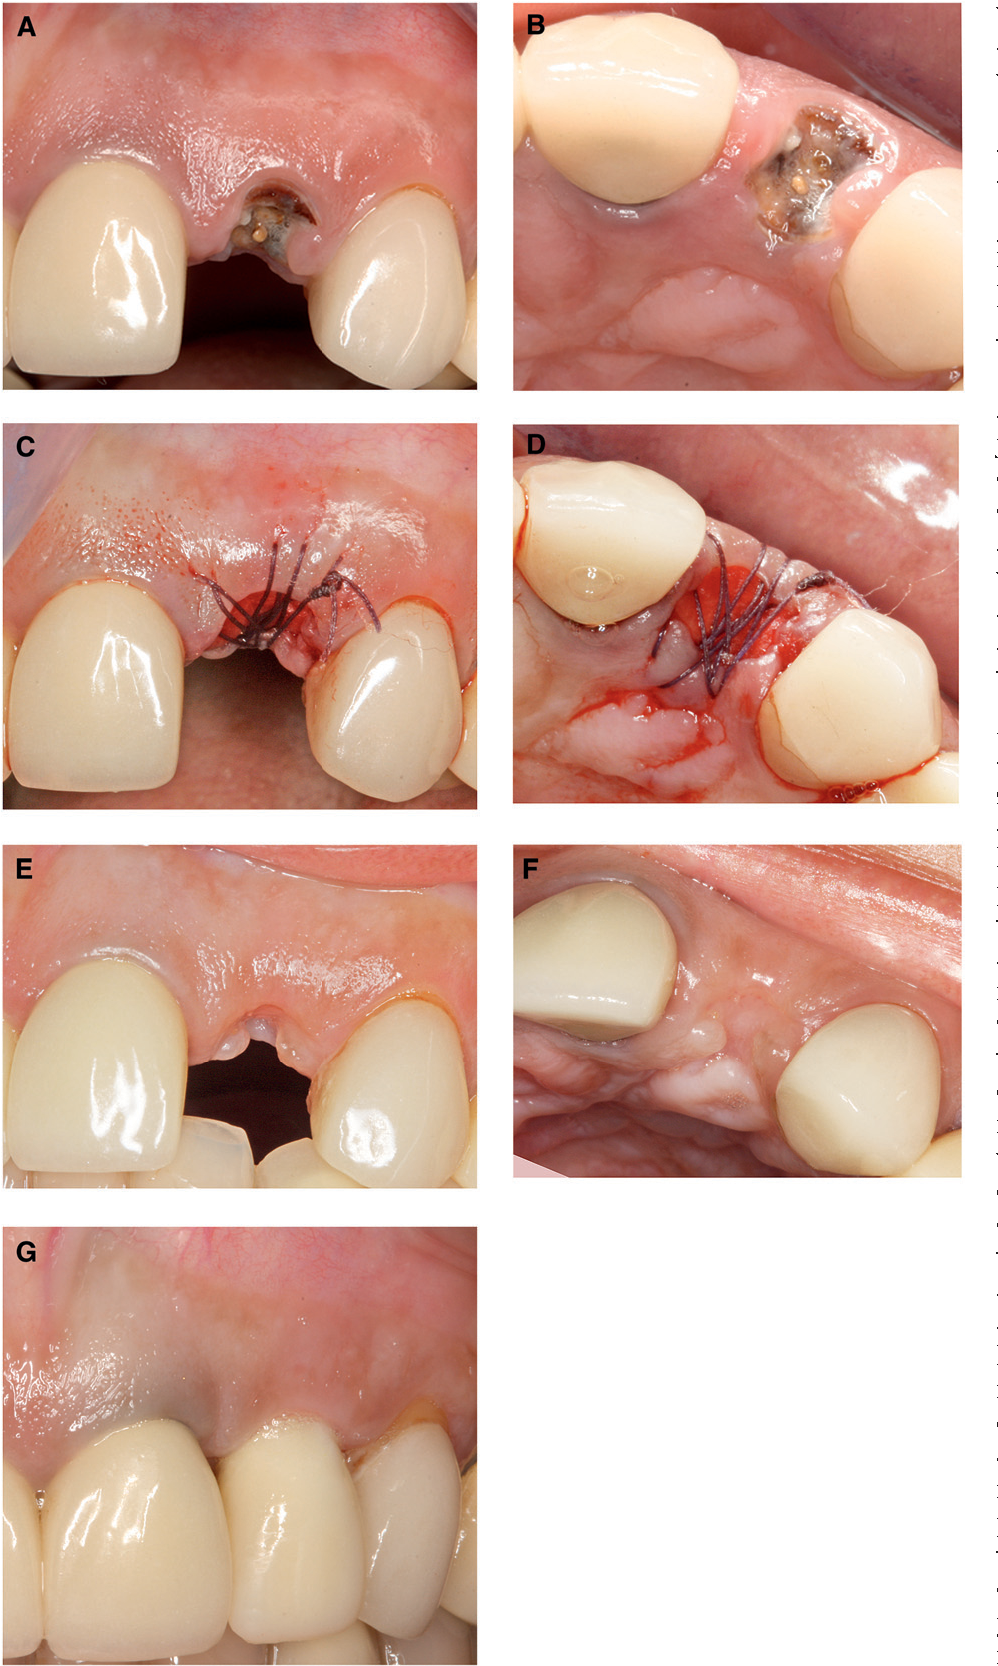 Pdf Histologic Analysis Of Healing After Tooth Extraction With Ridge Preservation Using Mineralized Human Bone Allograft Semantic Scholar